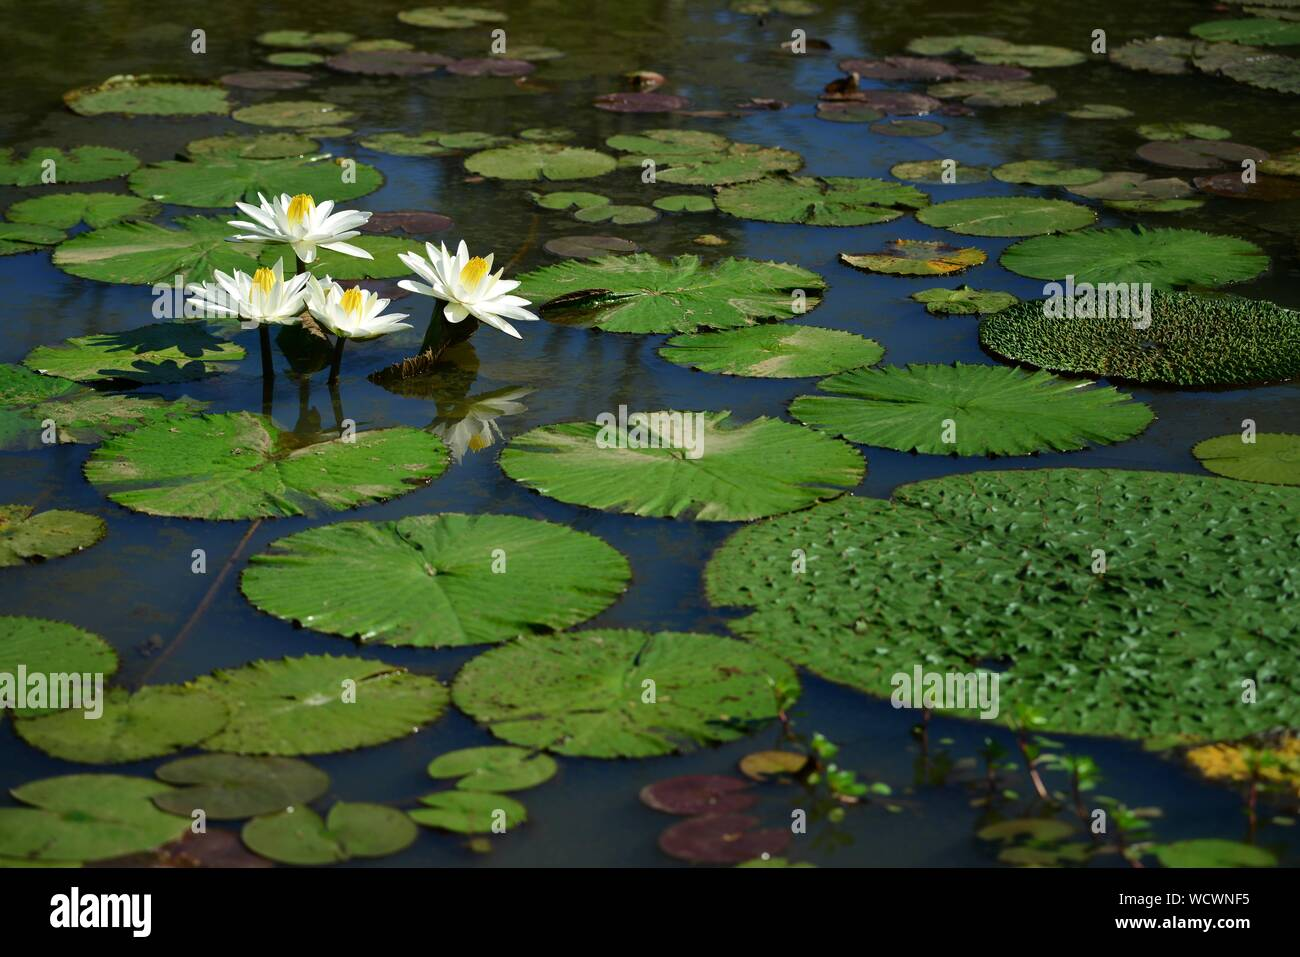 Large white water lilies surrounded by large lily pads Stock Photo